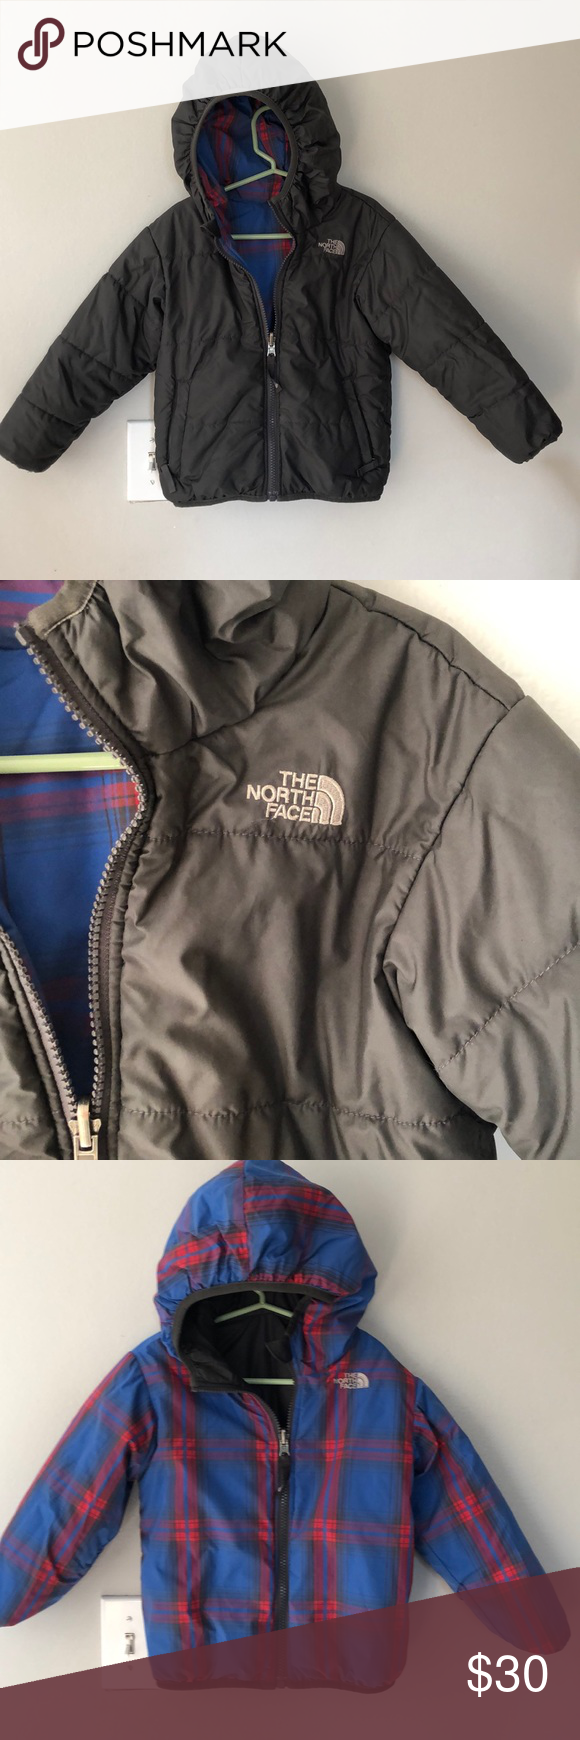 North Face Reversible 4t Coat Gray Blue And Red The North Face North Face Jacket Clothes Design [ 1740 x 580 Pixel ]